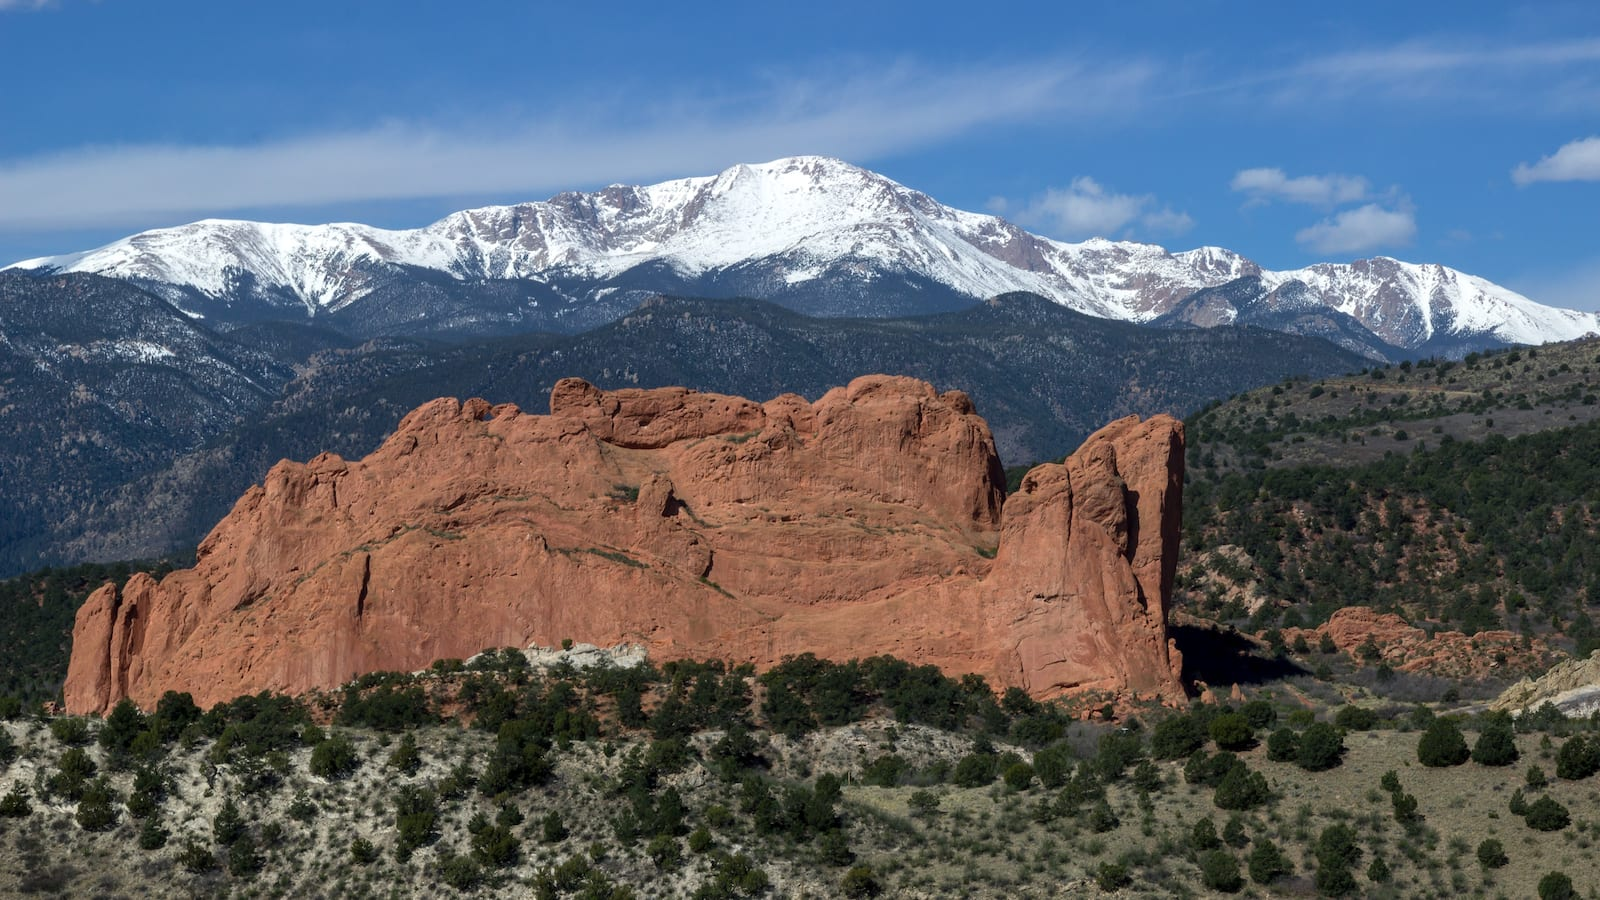 Pikes Peak and Garden of the Gods, Colorado